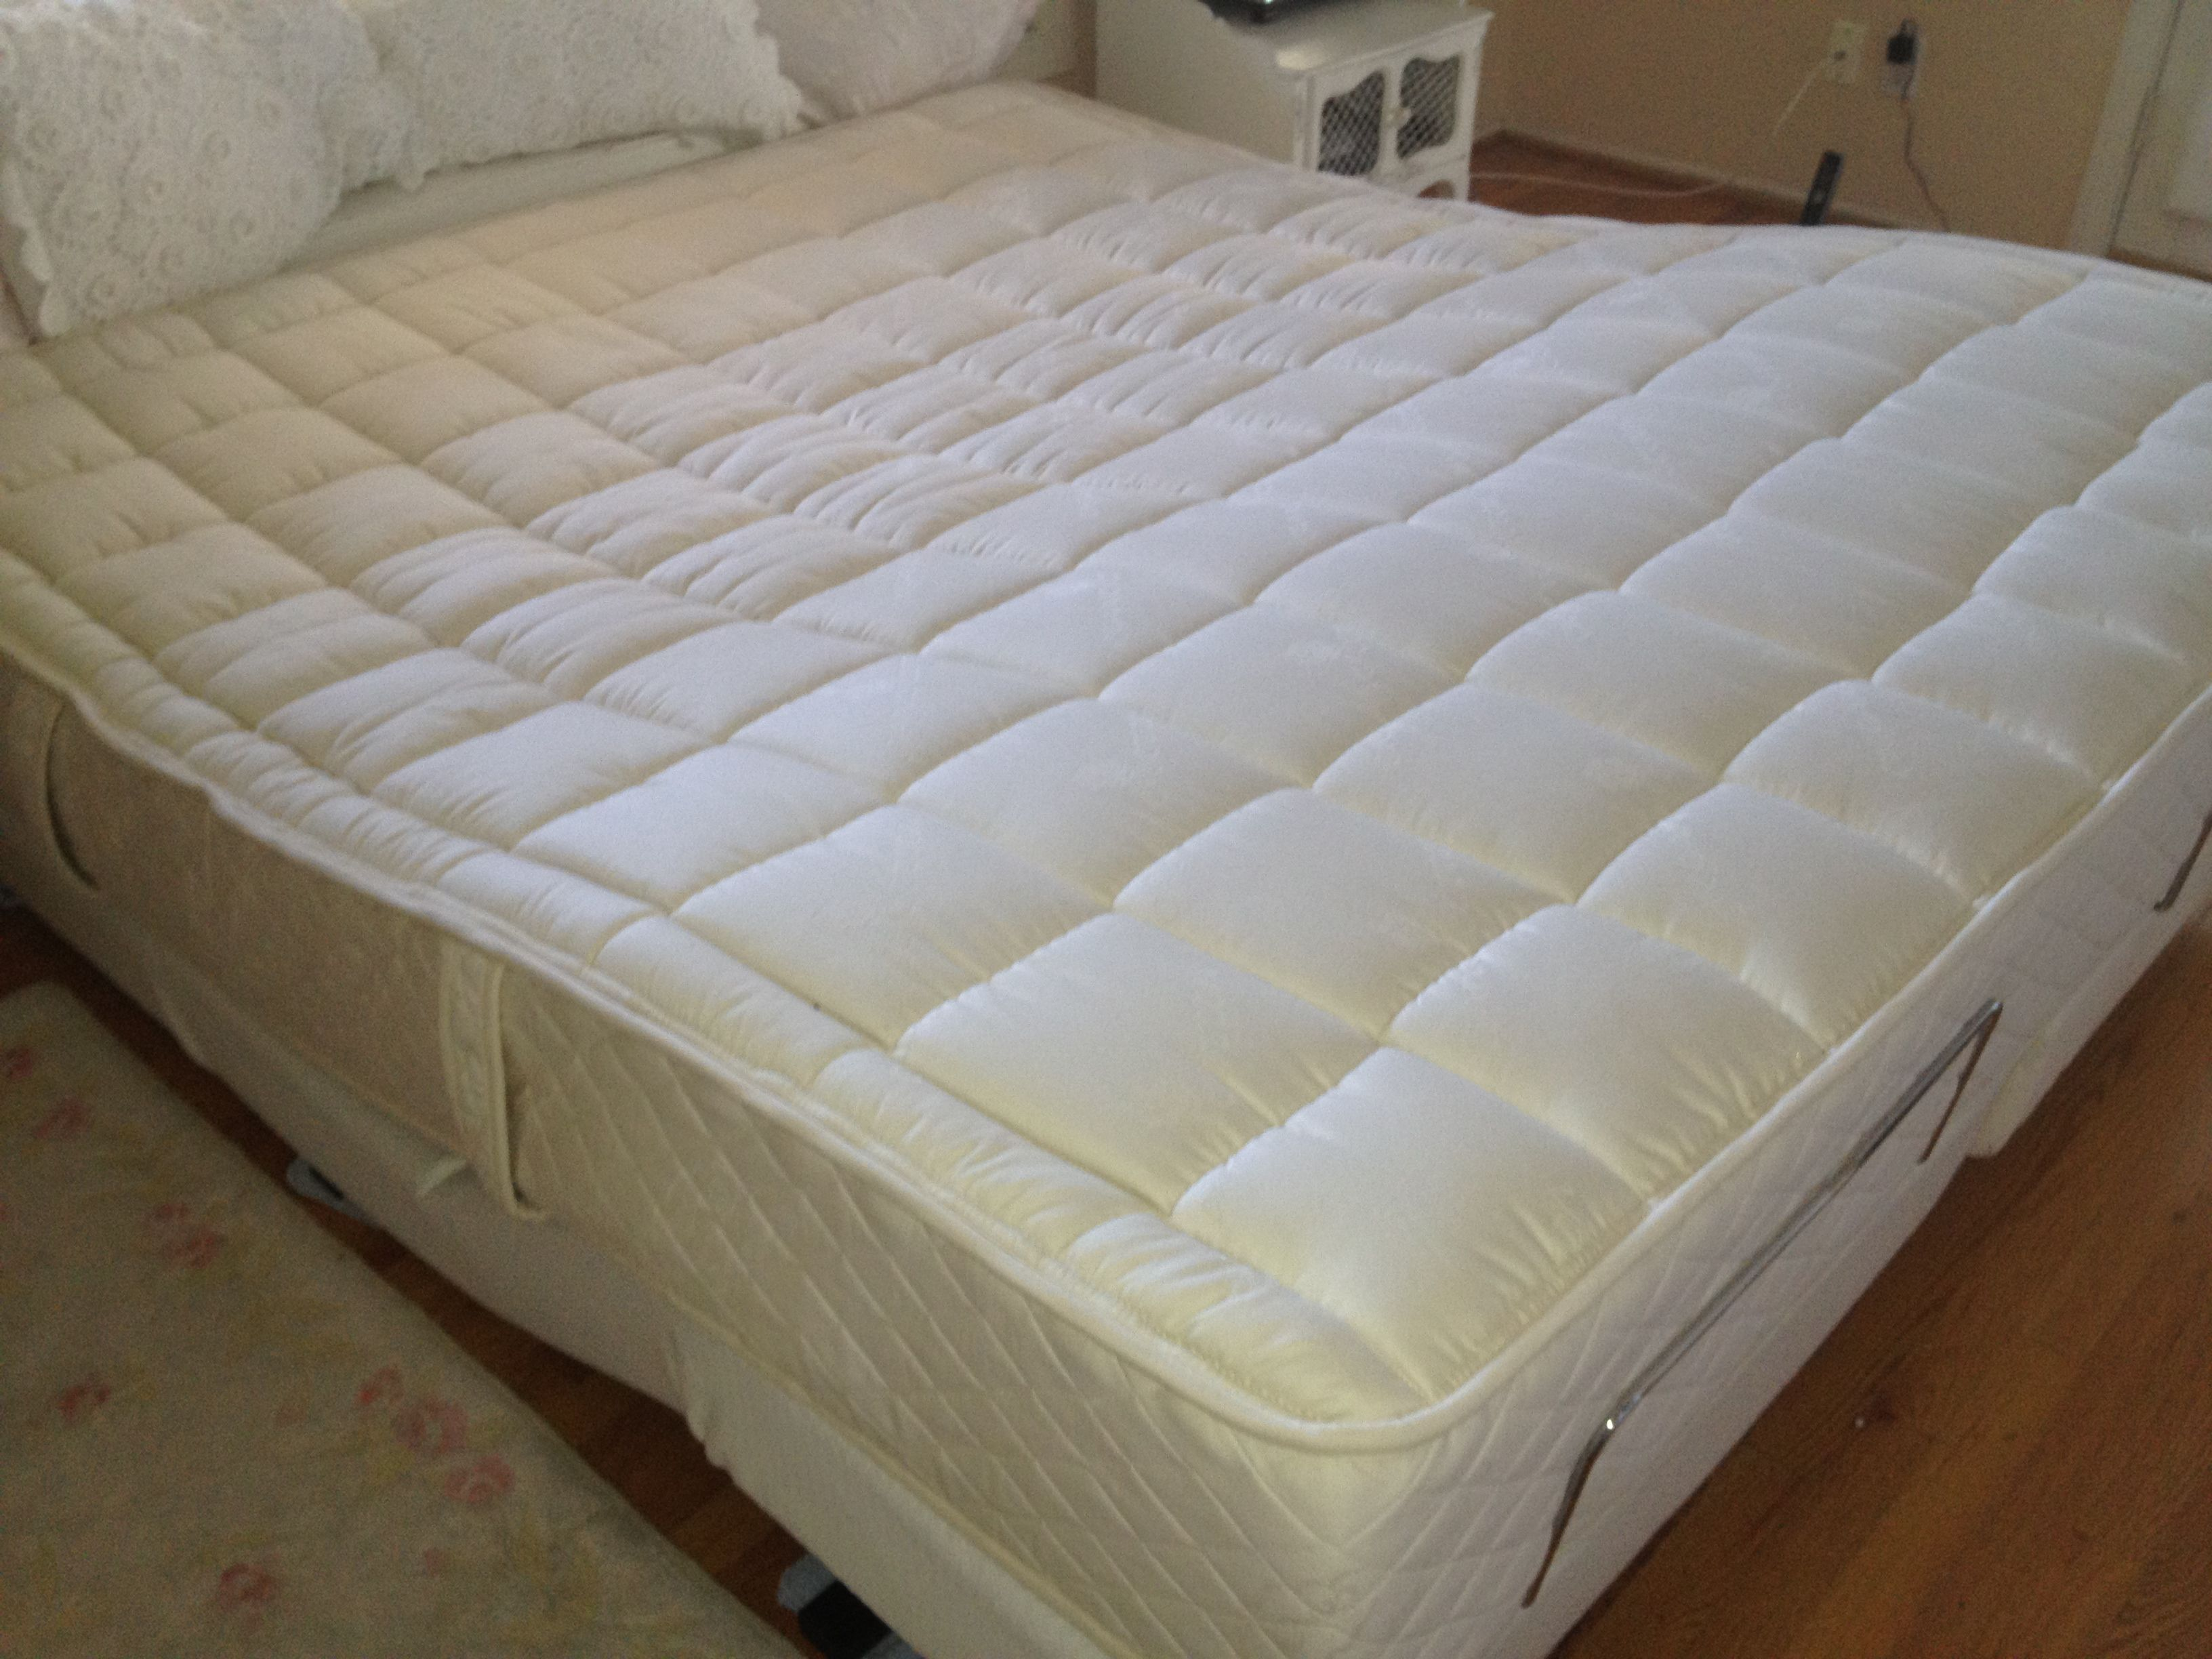 Bed And Mattress Deals Pin By Besthomezone On Bedroom Interior Design Inspiration King